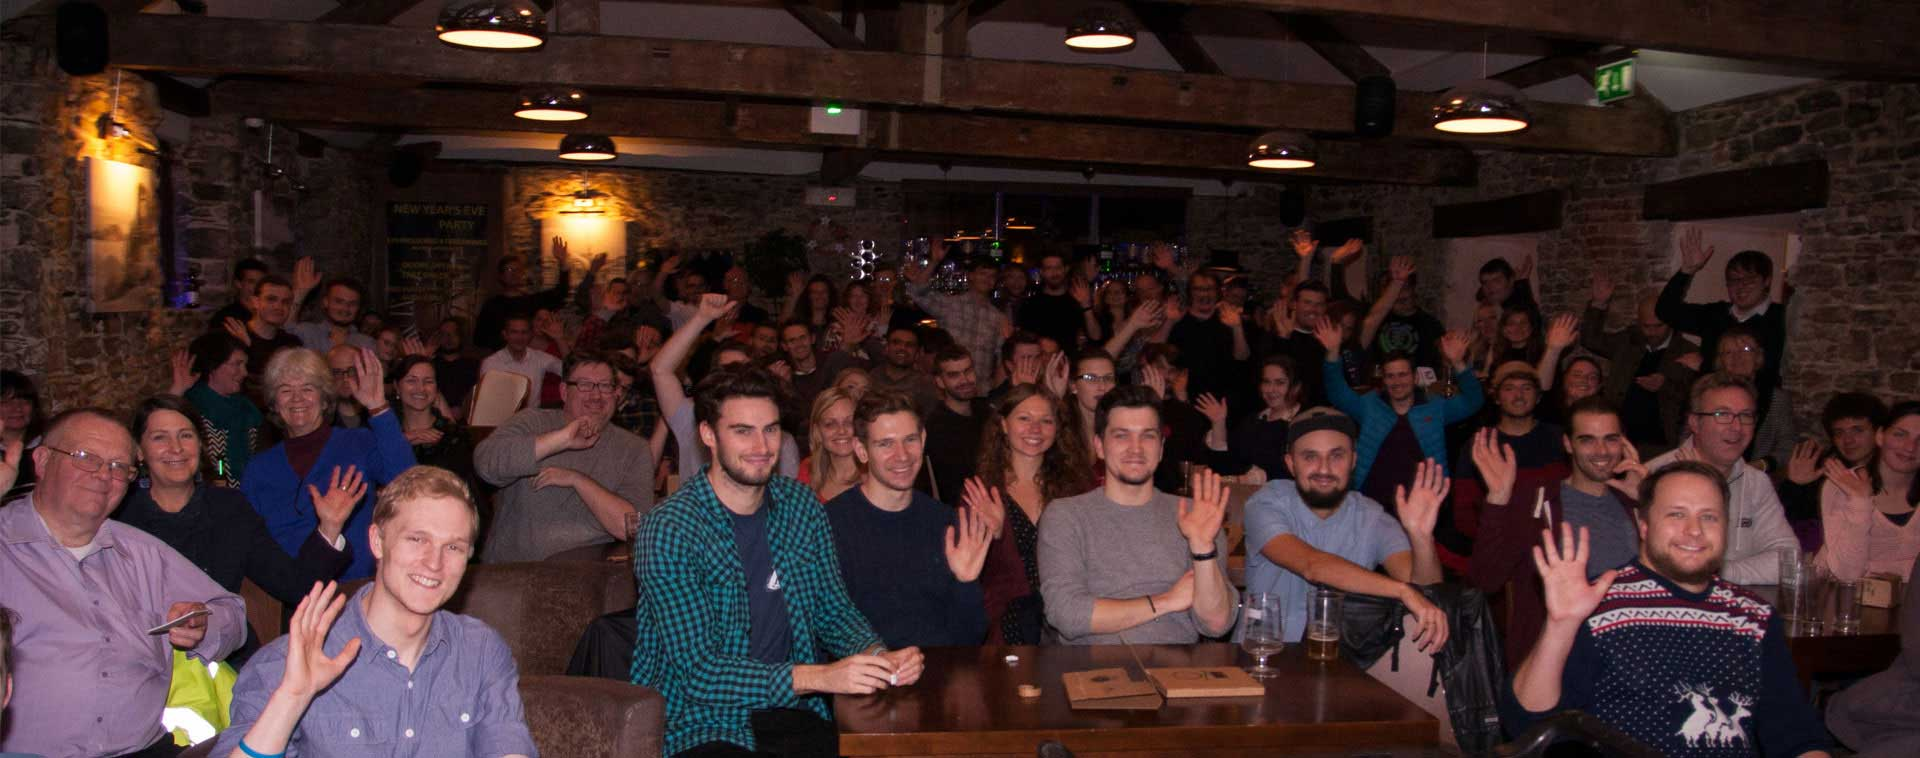 Crowd at December Meetup